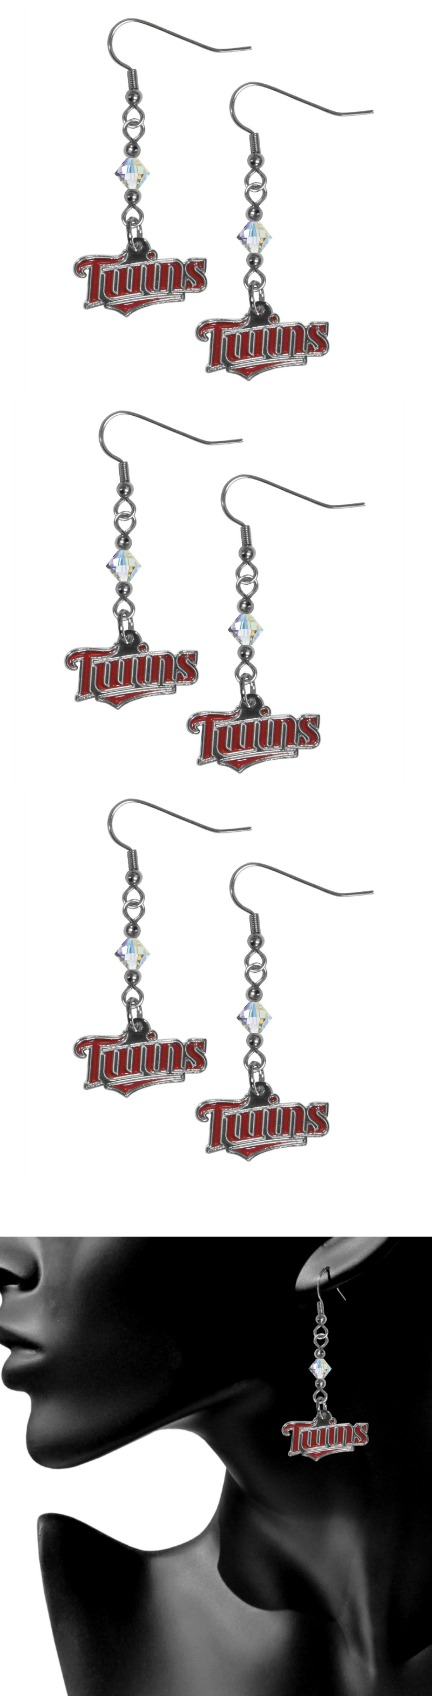 Minnesota Twins Crystal Dangle Earrings! Click The Image To Buy It Now or Tag Someone You Want To Buy This For. #MinnesotaTwins